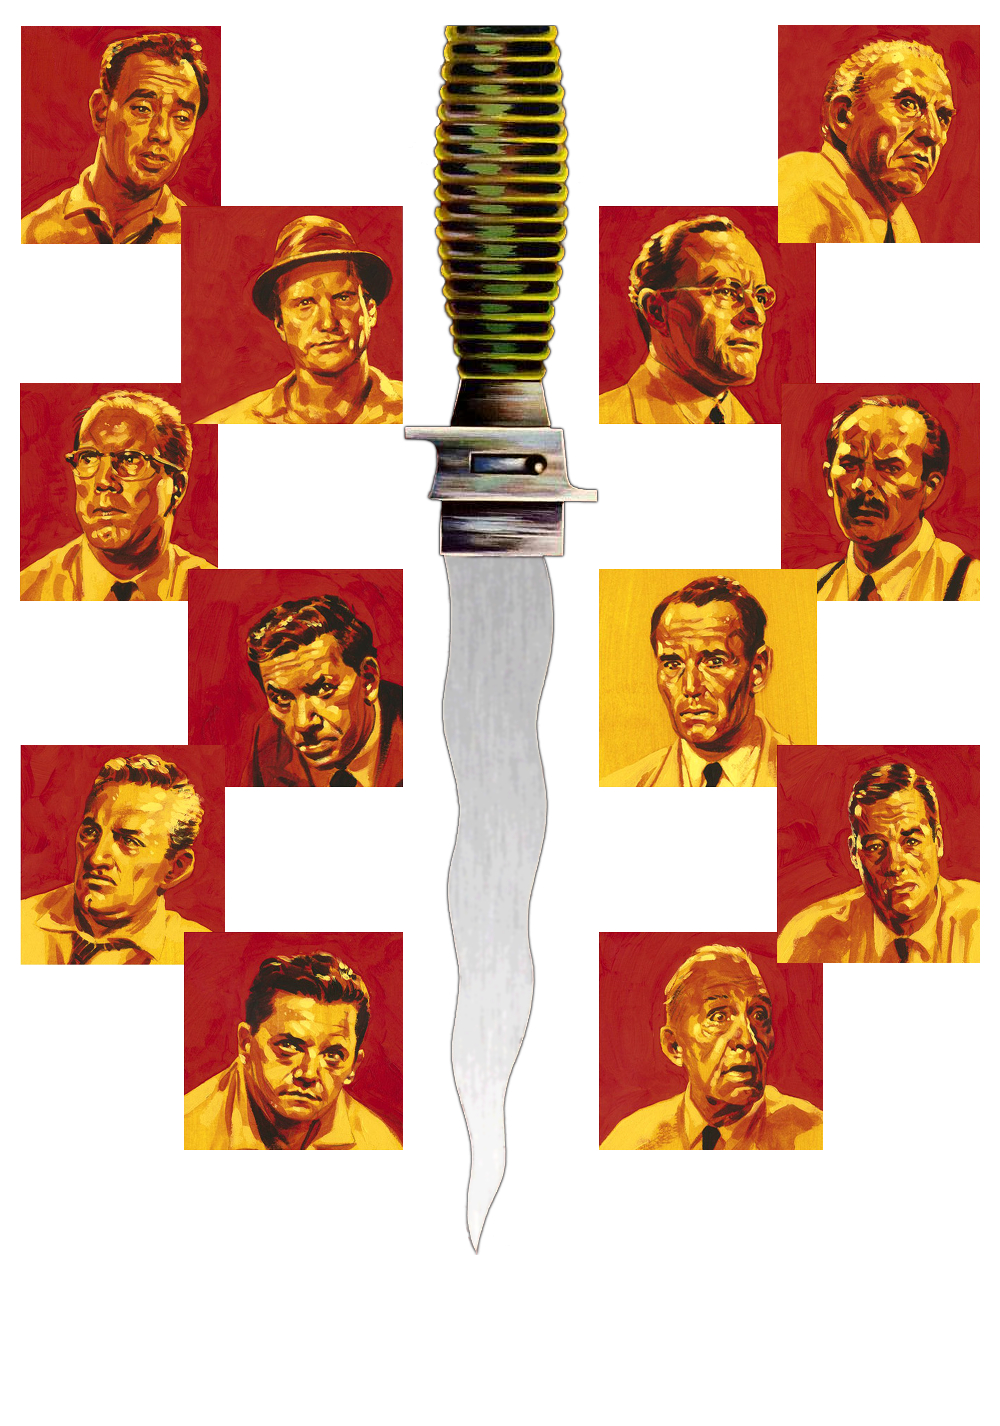 ' twelve angry men illustrates the dangers Free 12 angry men papers leadership in 12 angry men - in the film 12 angry men, a group of twelve jurors are deciding the fate of a young boy accused of.